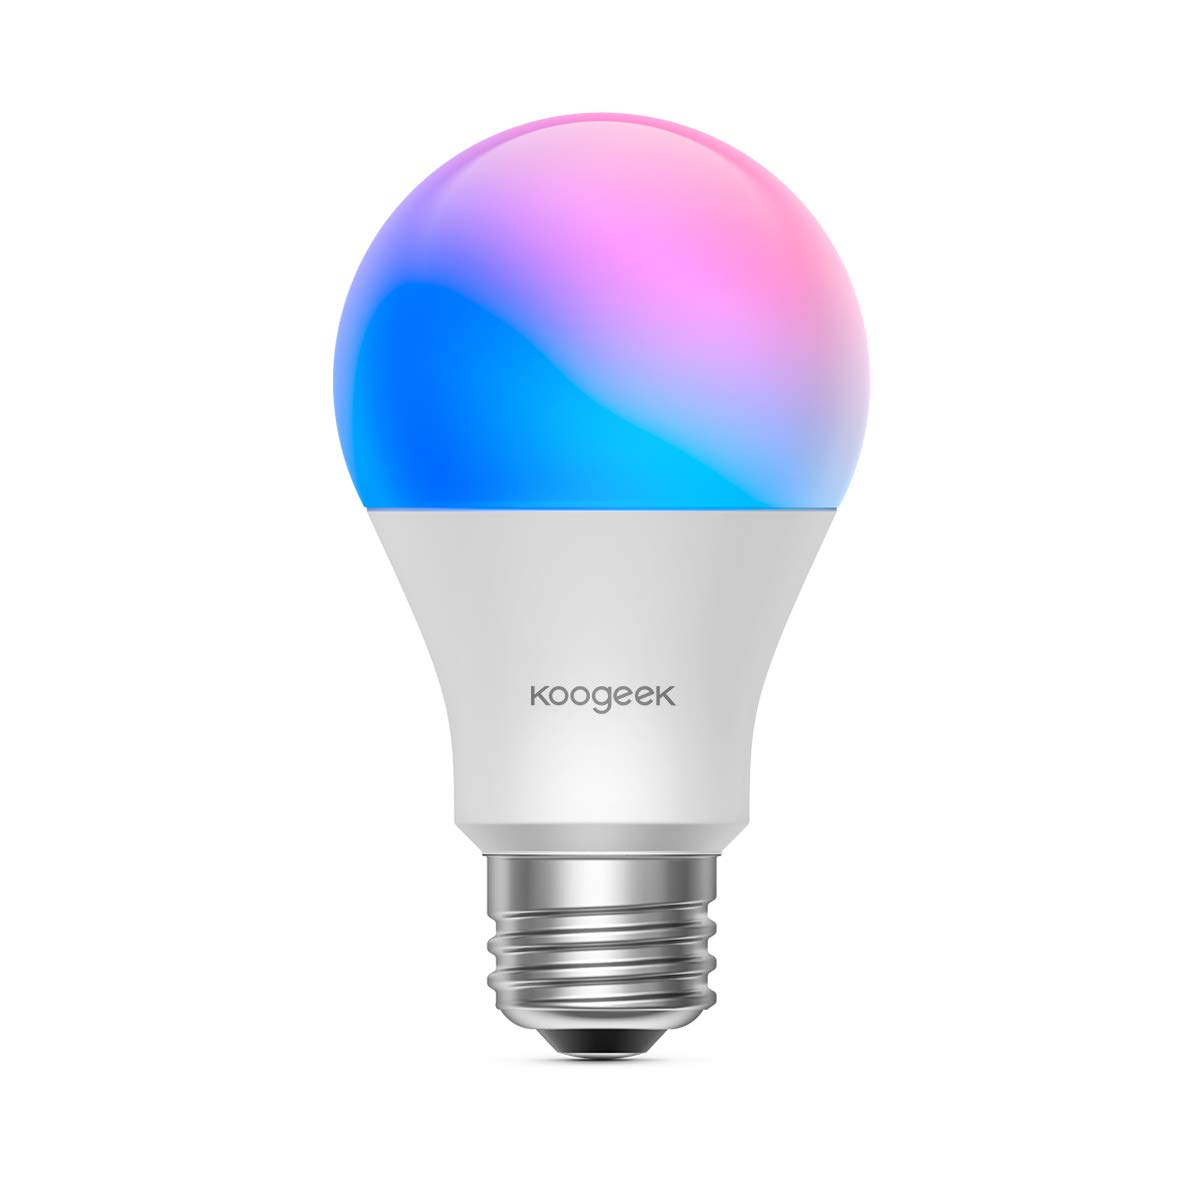 This Wi-Fi Smart light bulb does not require a hub, and it offers millions of color shades and combinations for under $20 (Photo via Amazon)